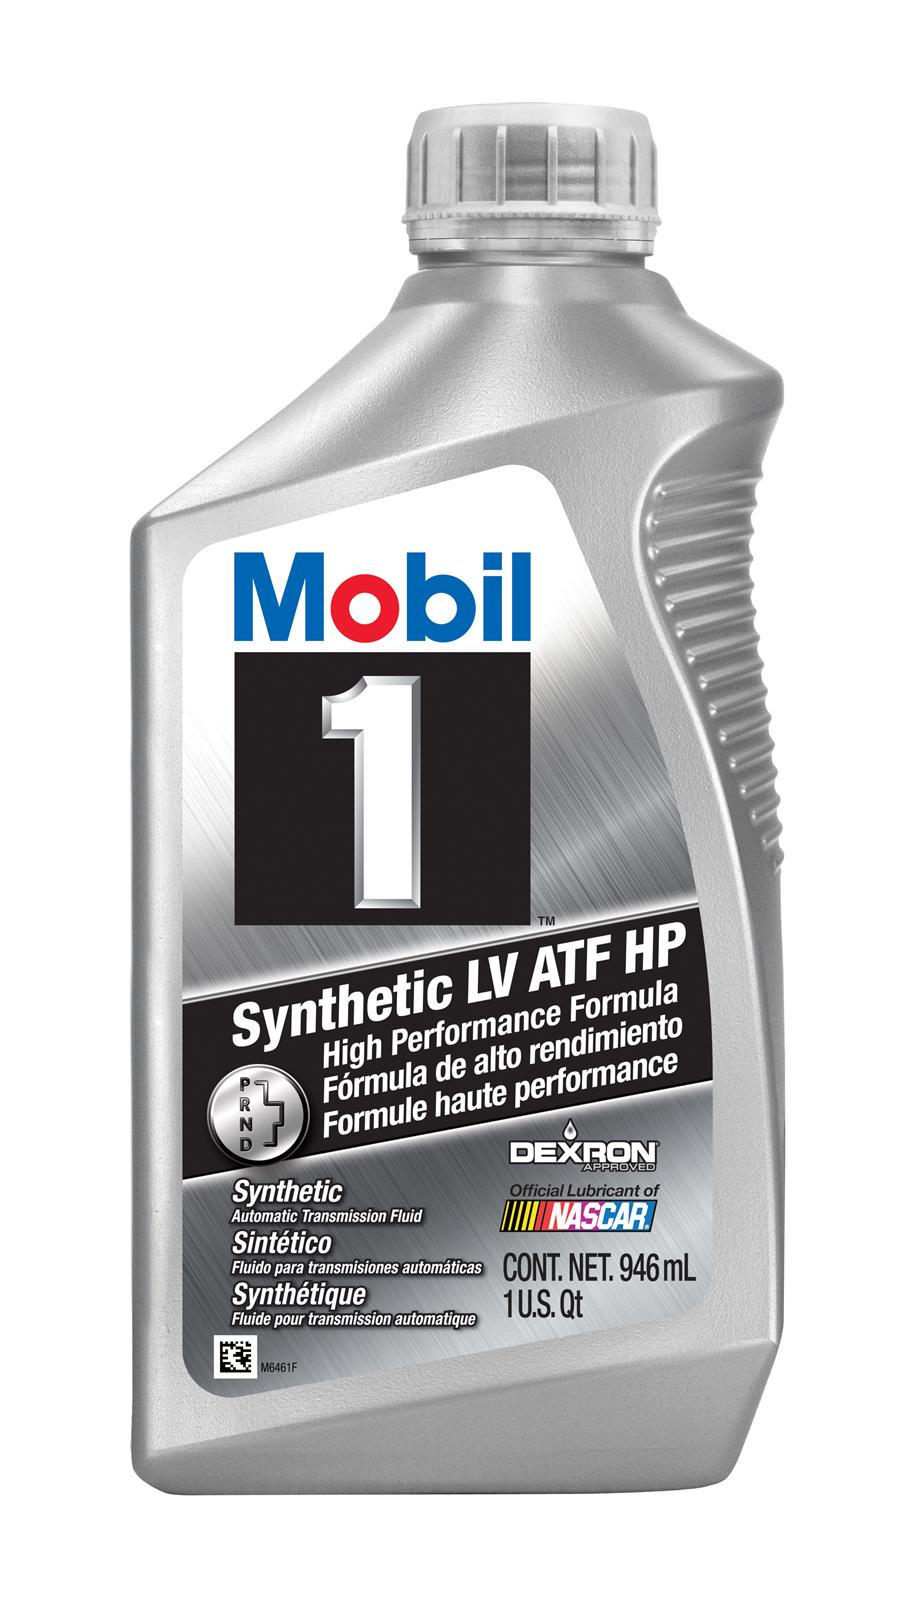 Mobil 1 Synthetic LV ATF HP 122210-1